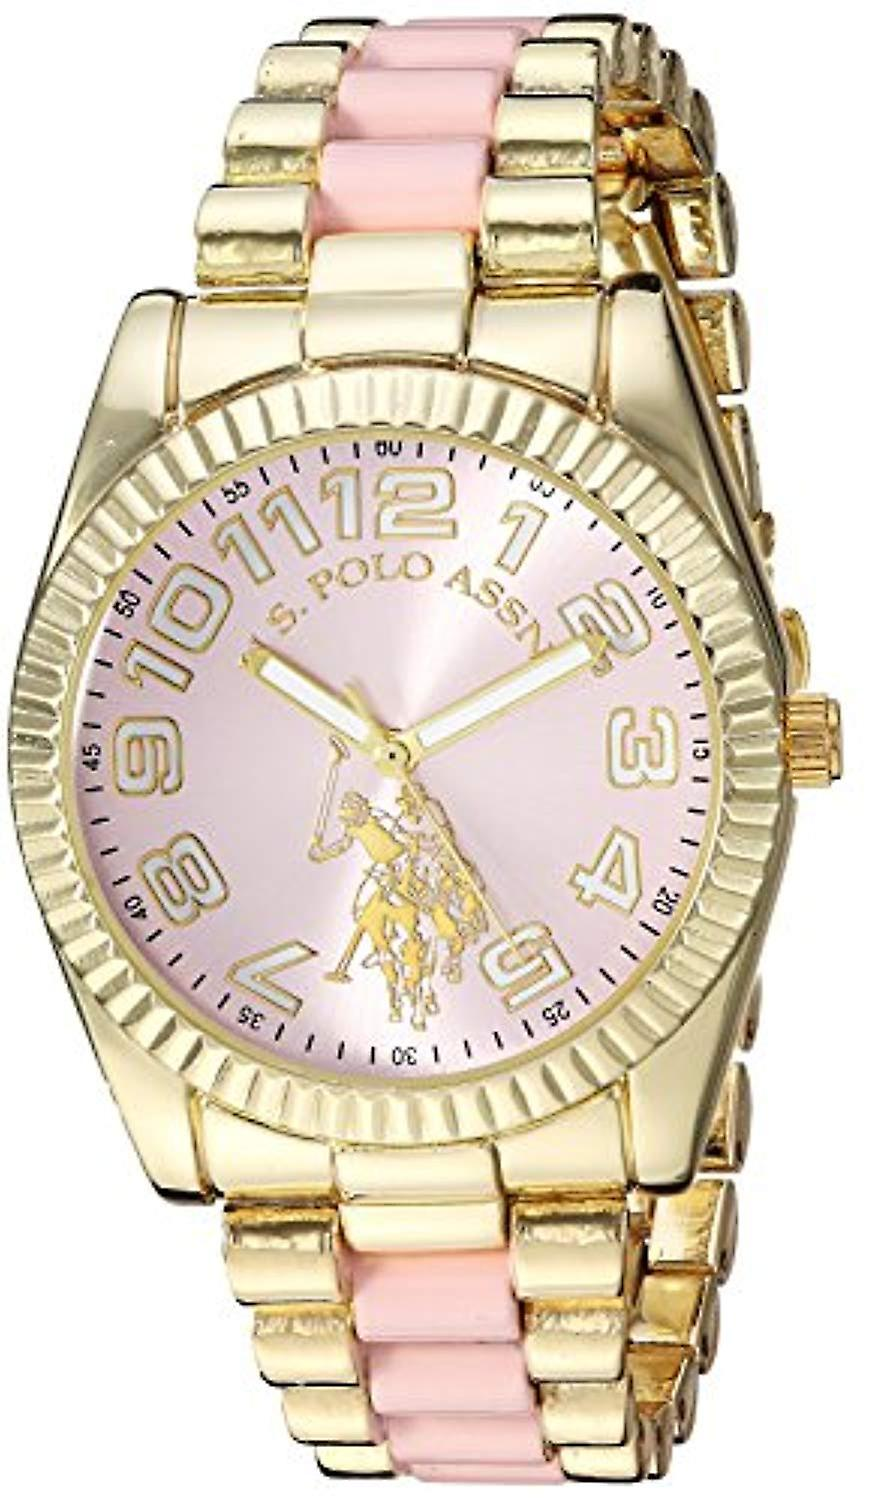 U.S. Polo Assn. Donna Ref watch. out40141